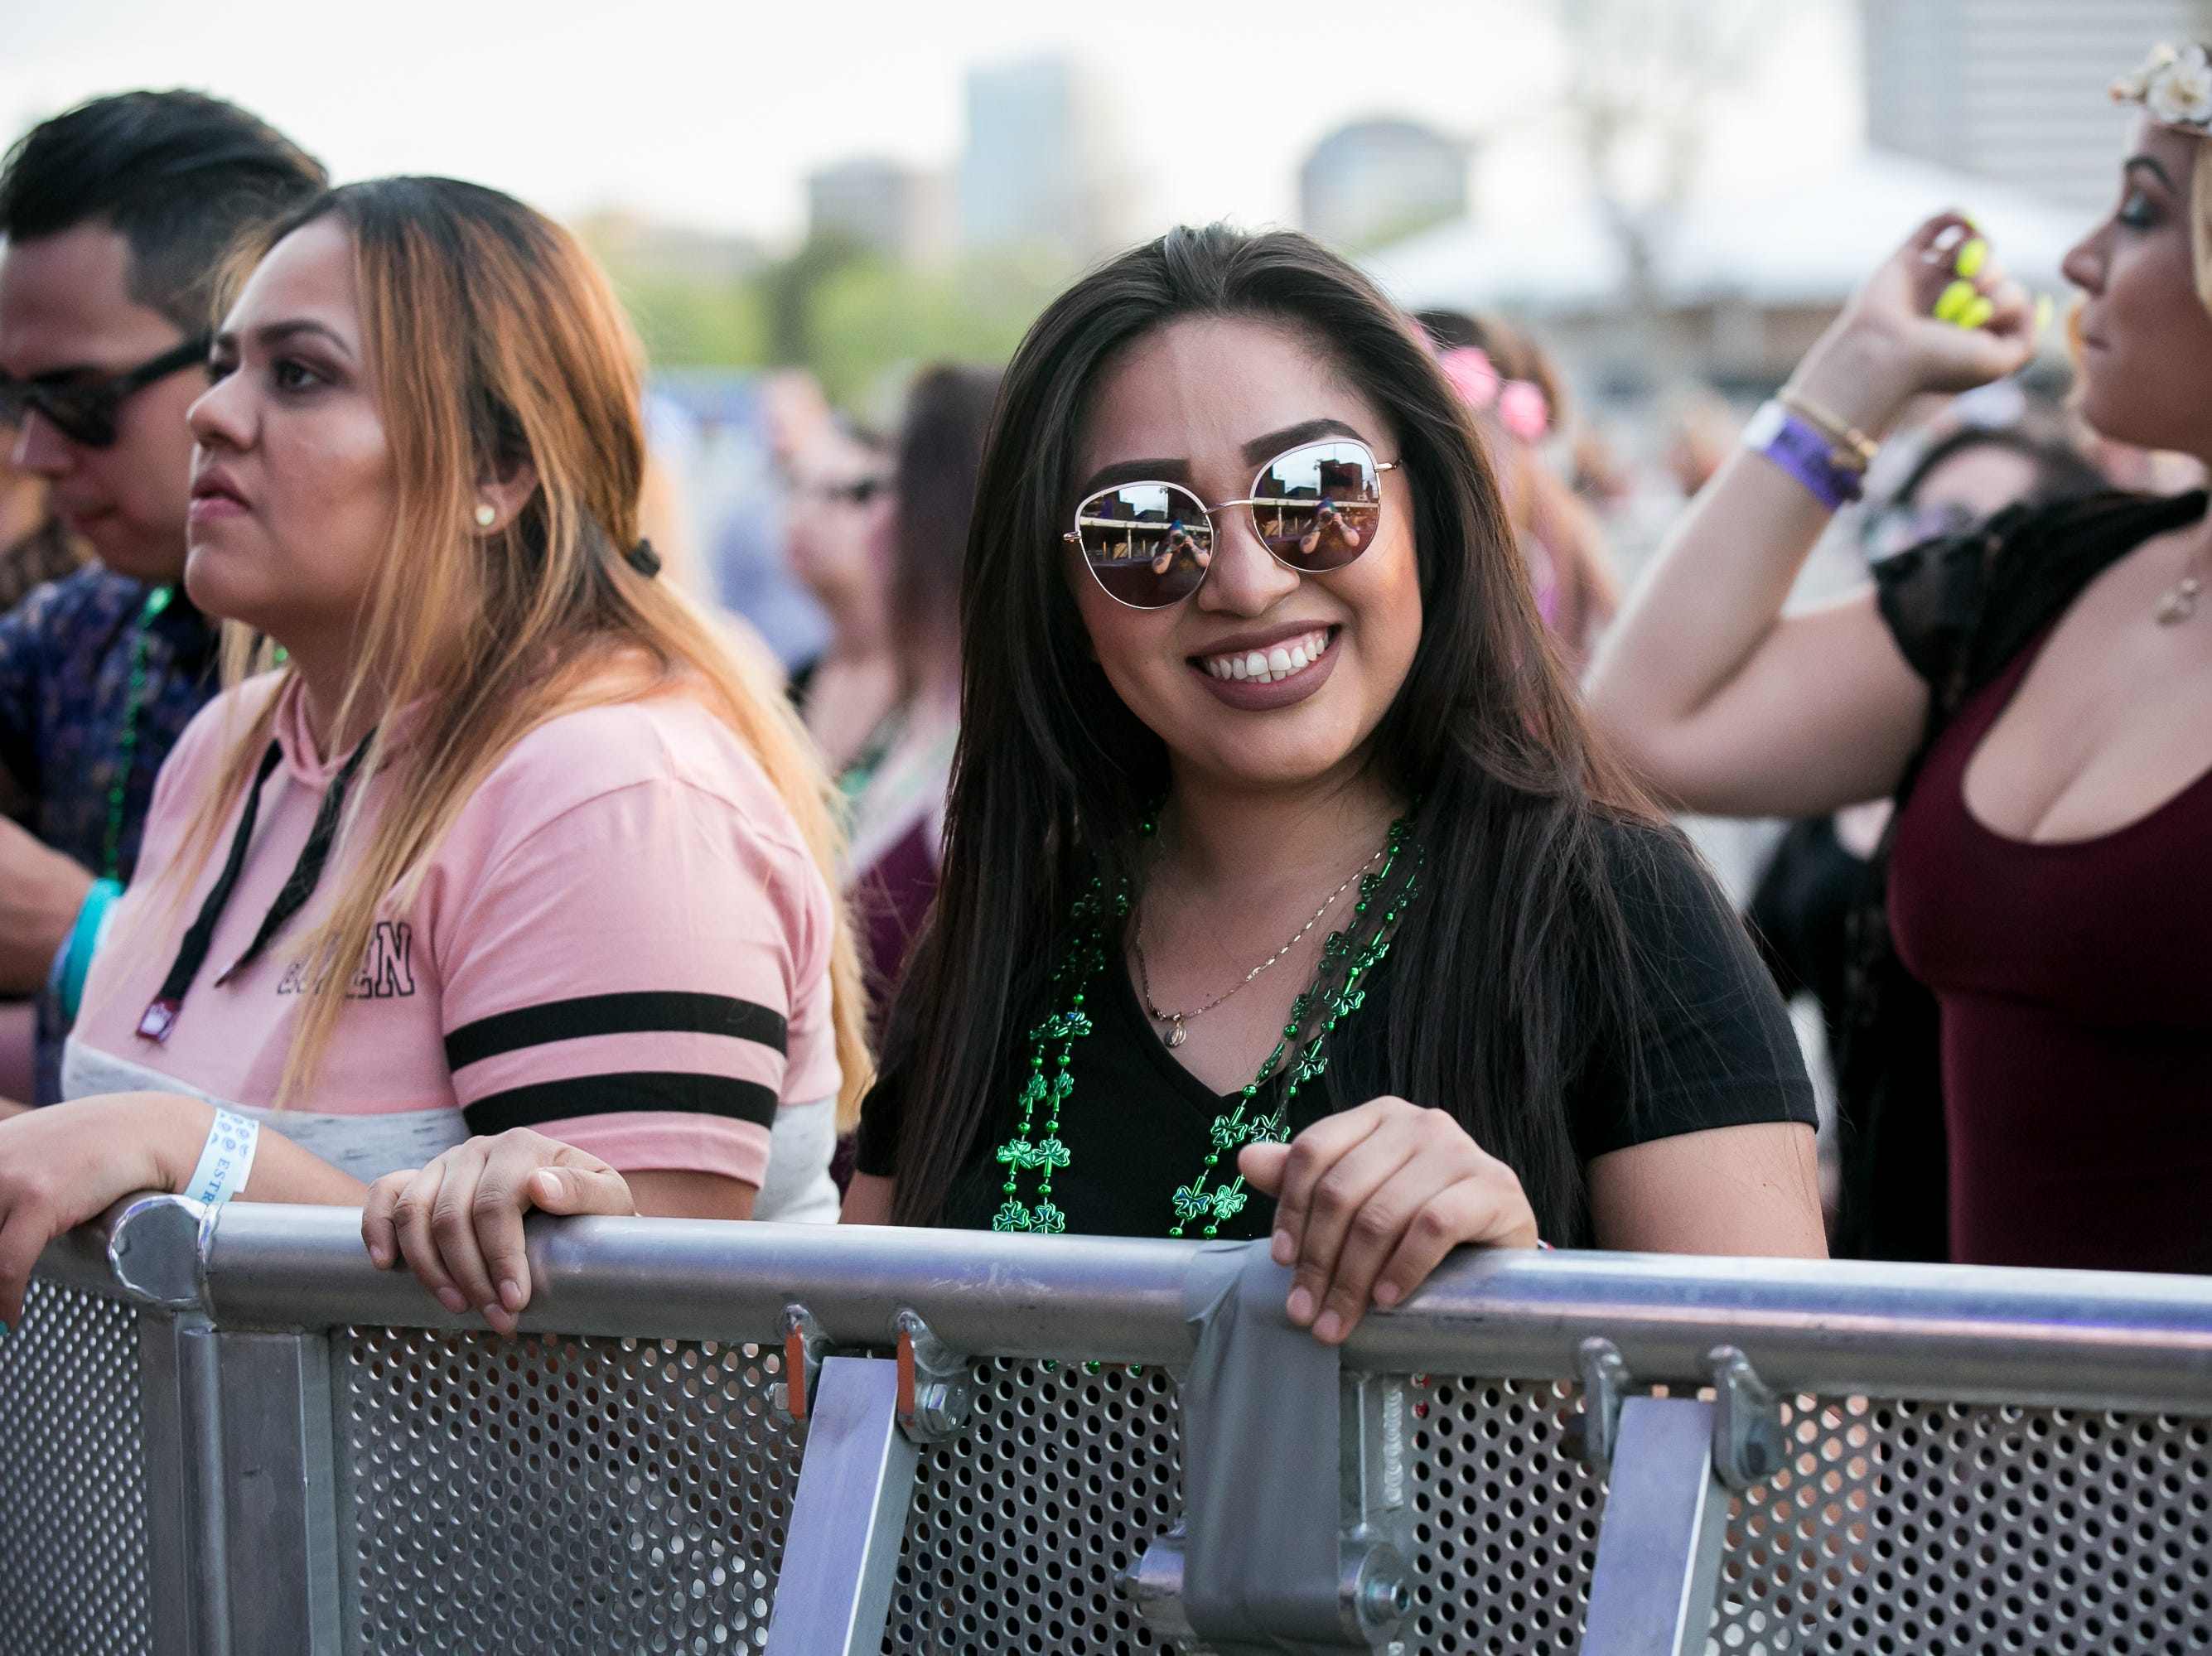 Fans enjoy the music at Pot of Gold Music Festival at Steele Indian School Park on Friday, March 15, 2019.